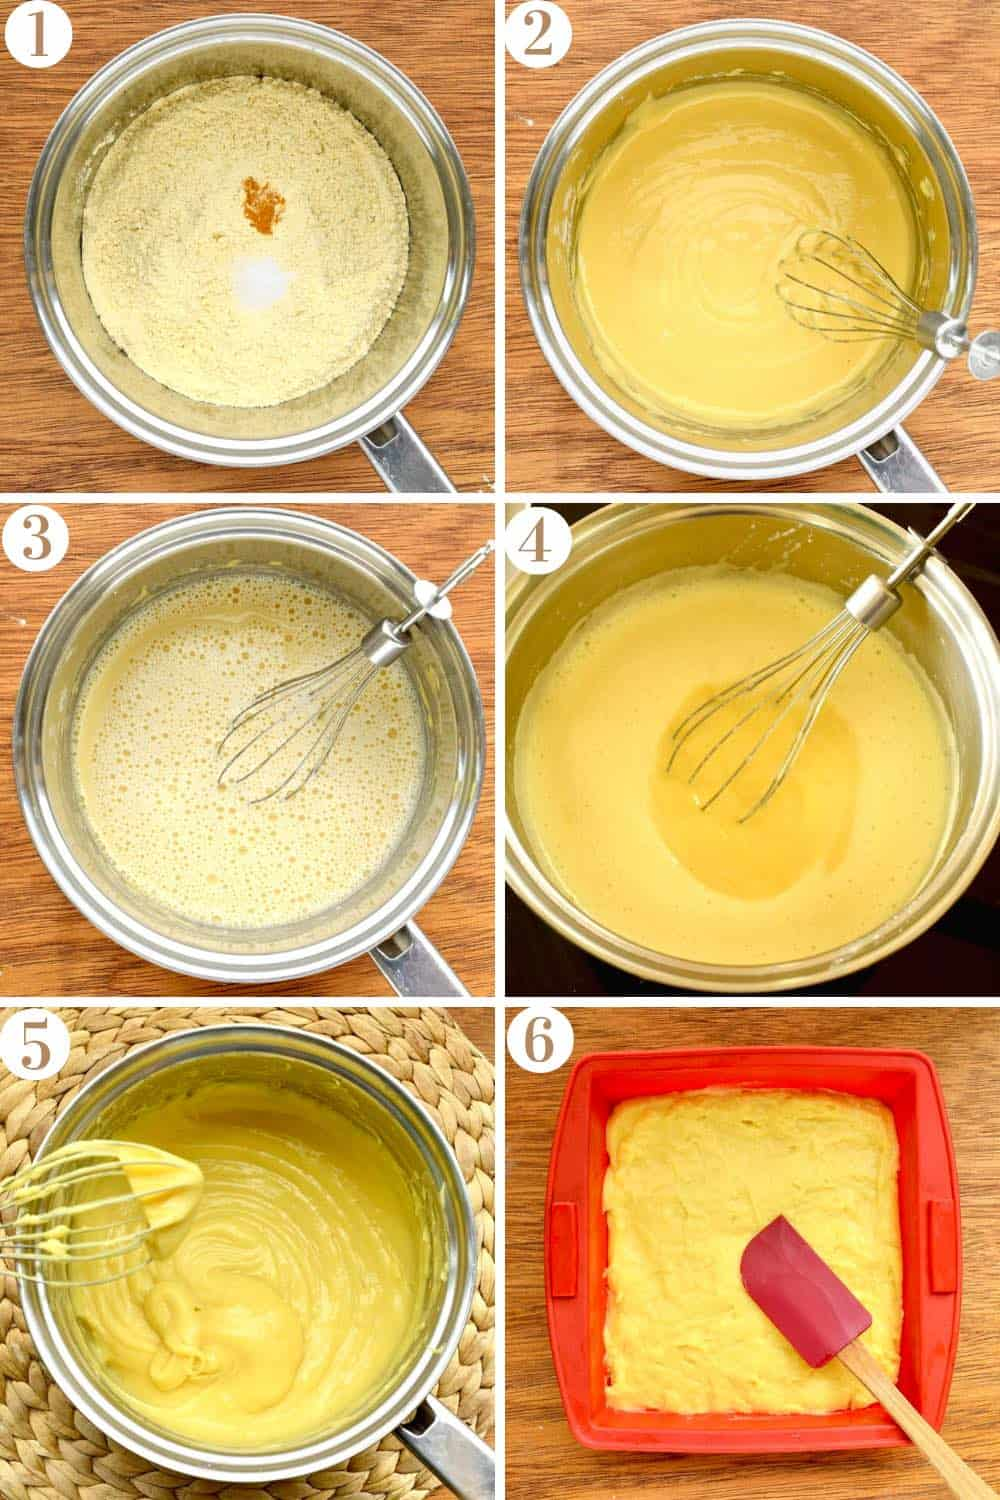 A step by step collage of how to make chickpea tofu, showing the six stages of the chickpea flour mixture being mixed, thickened and setting.